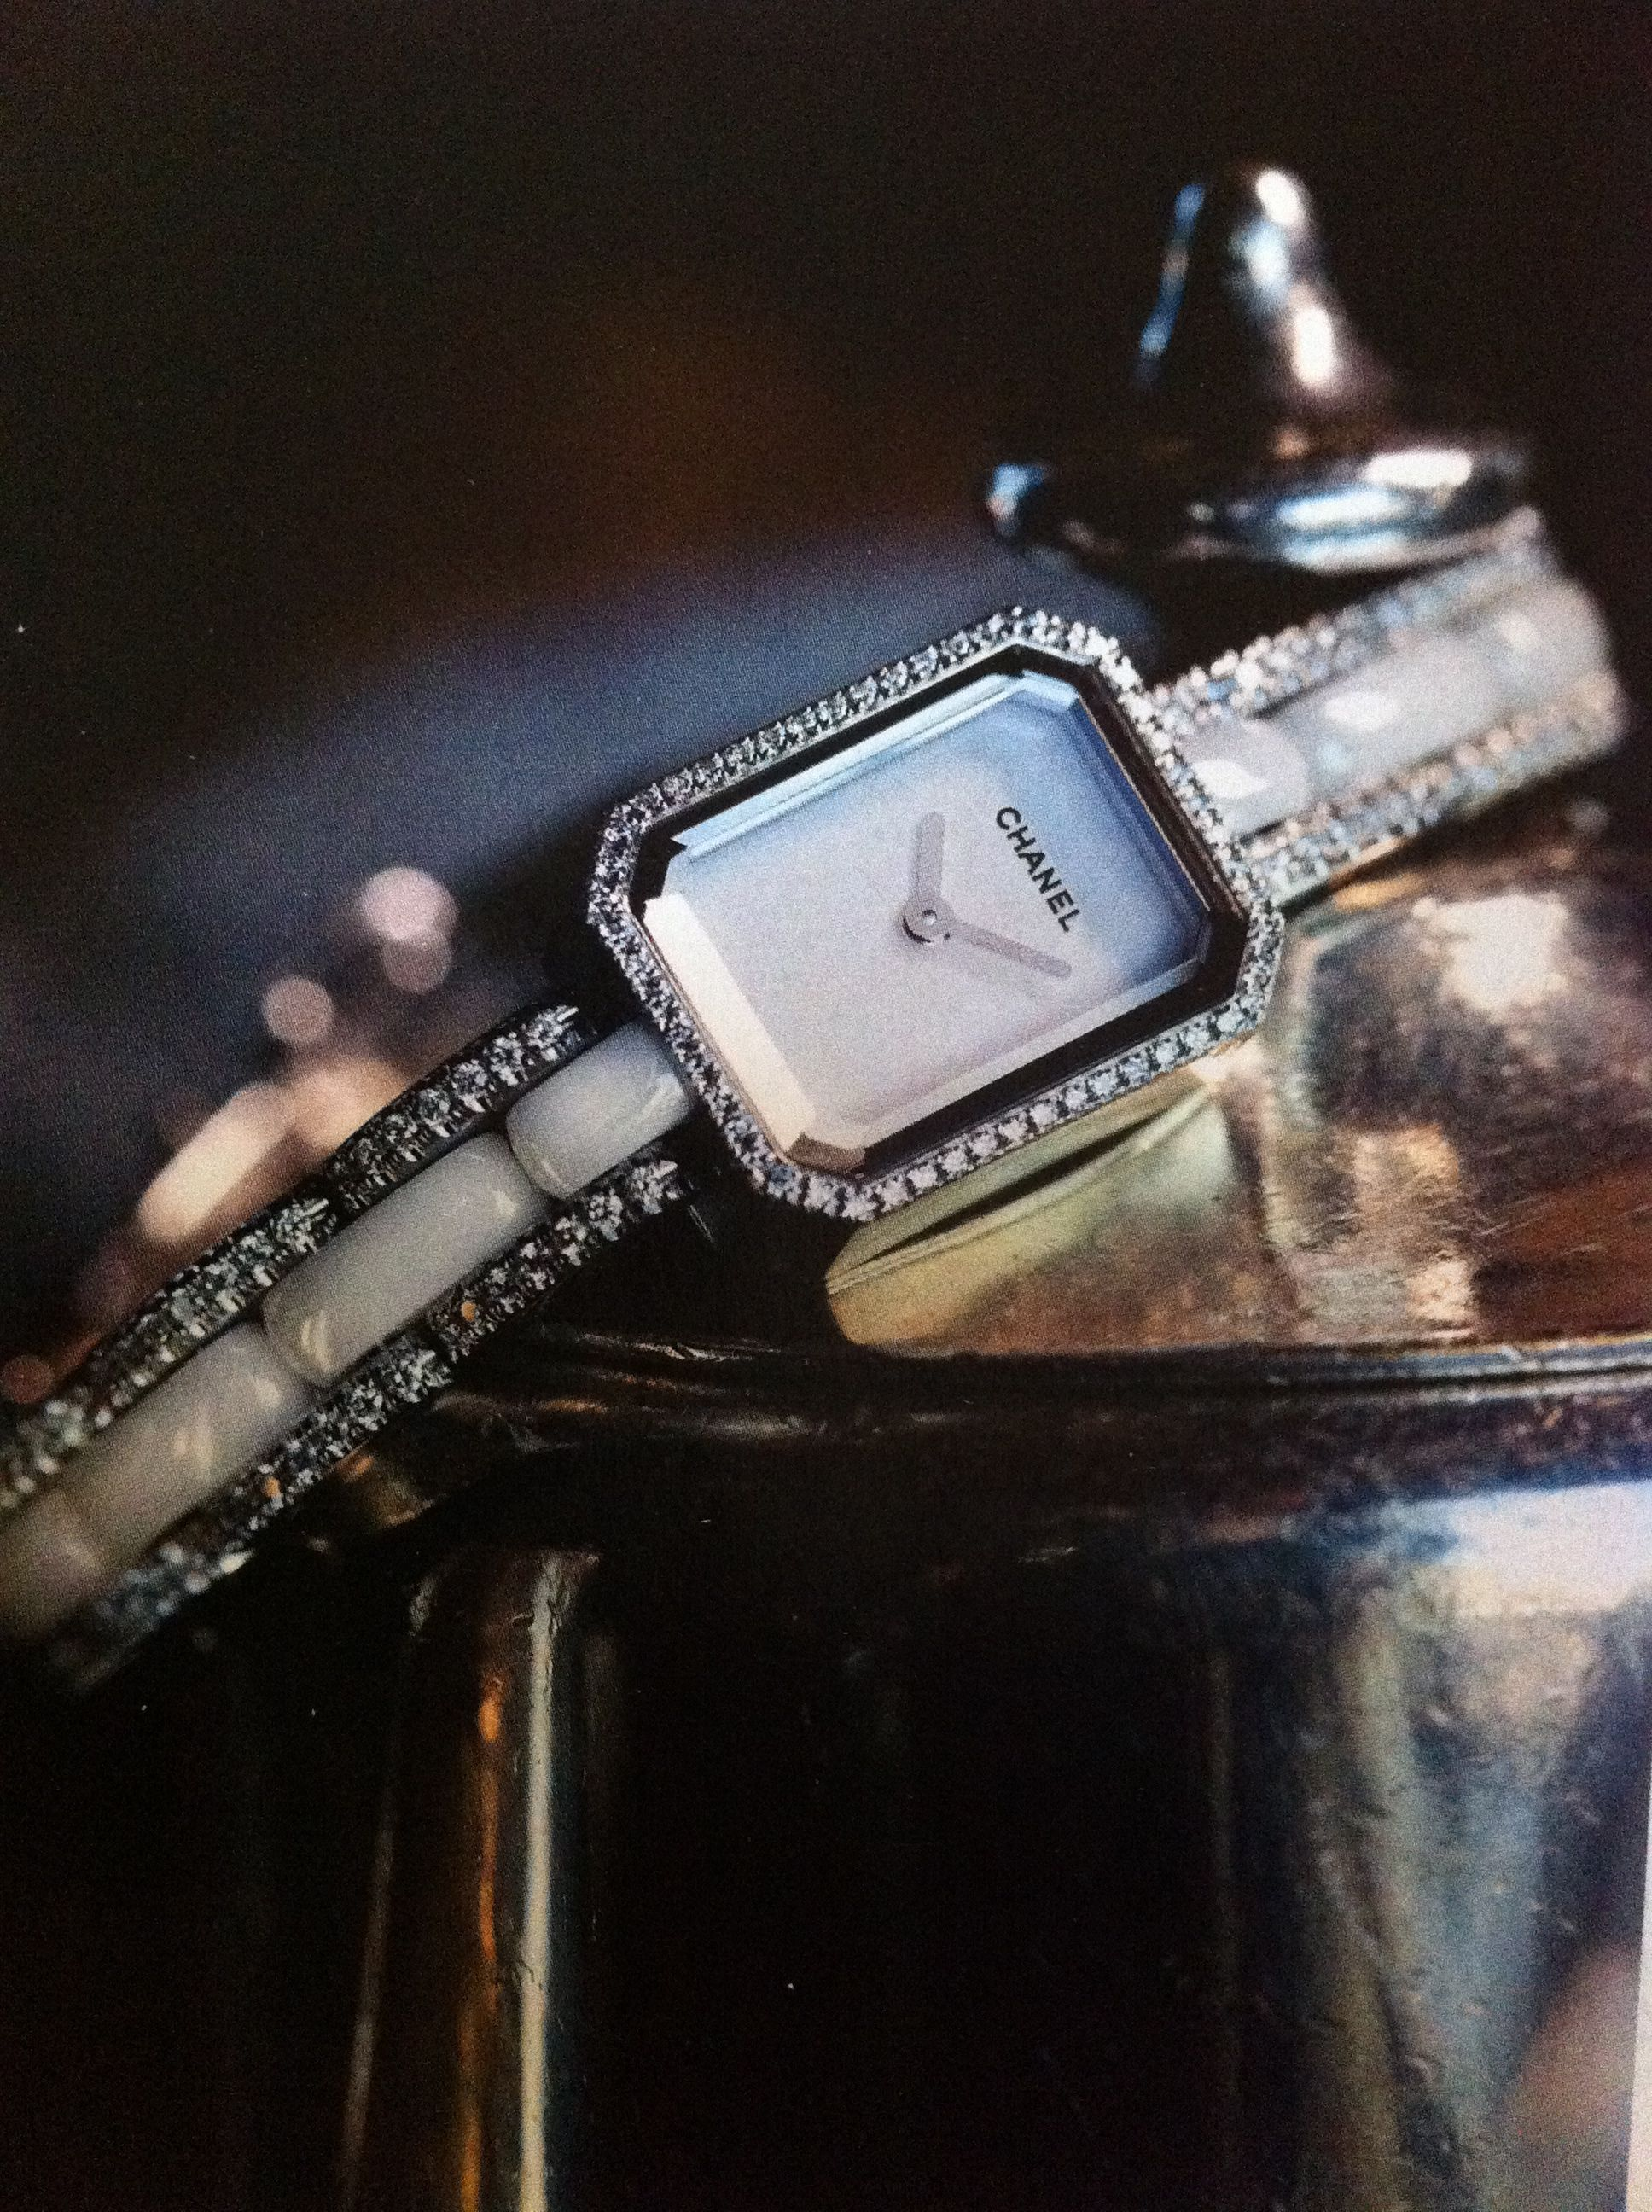 Chanel, love this watch!